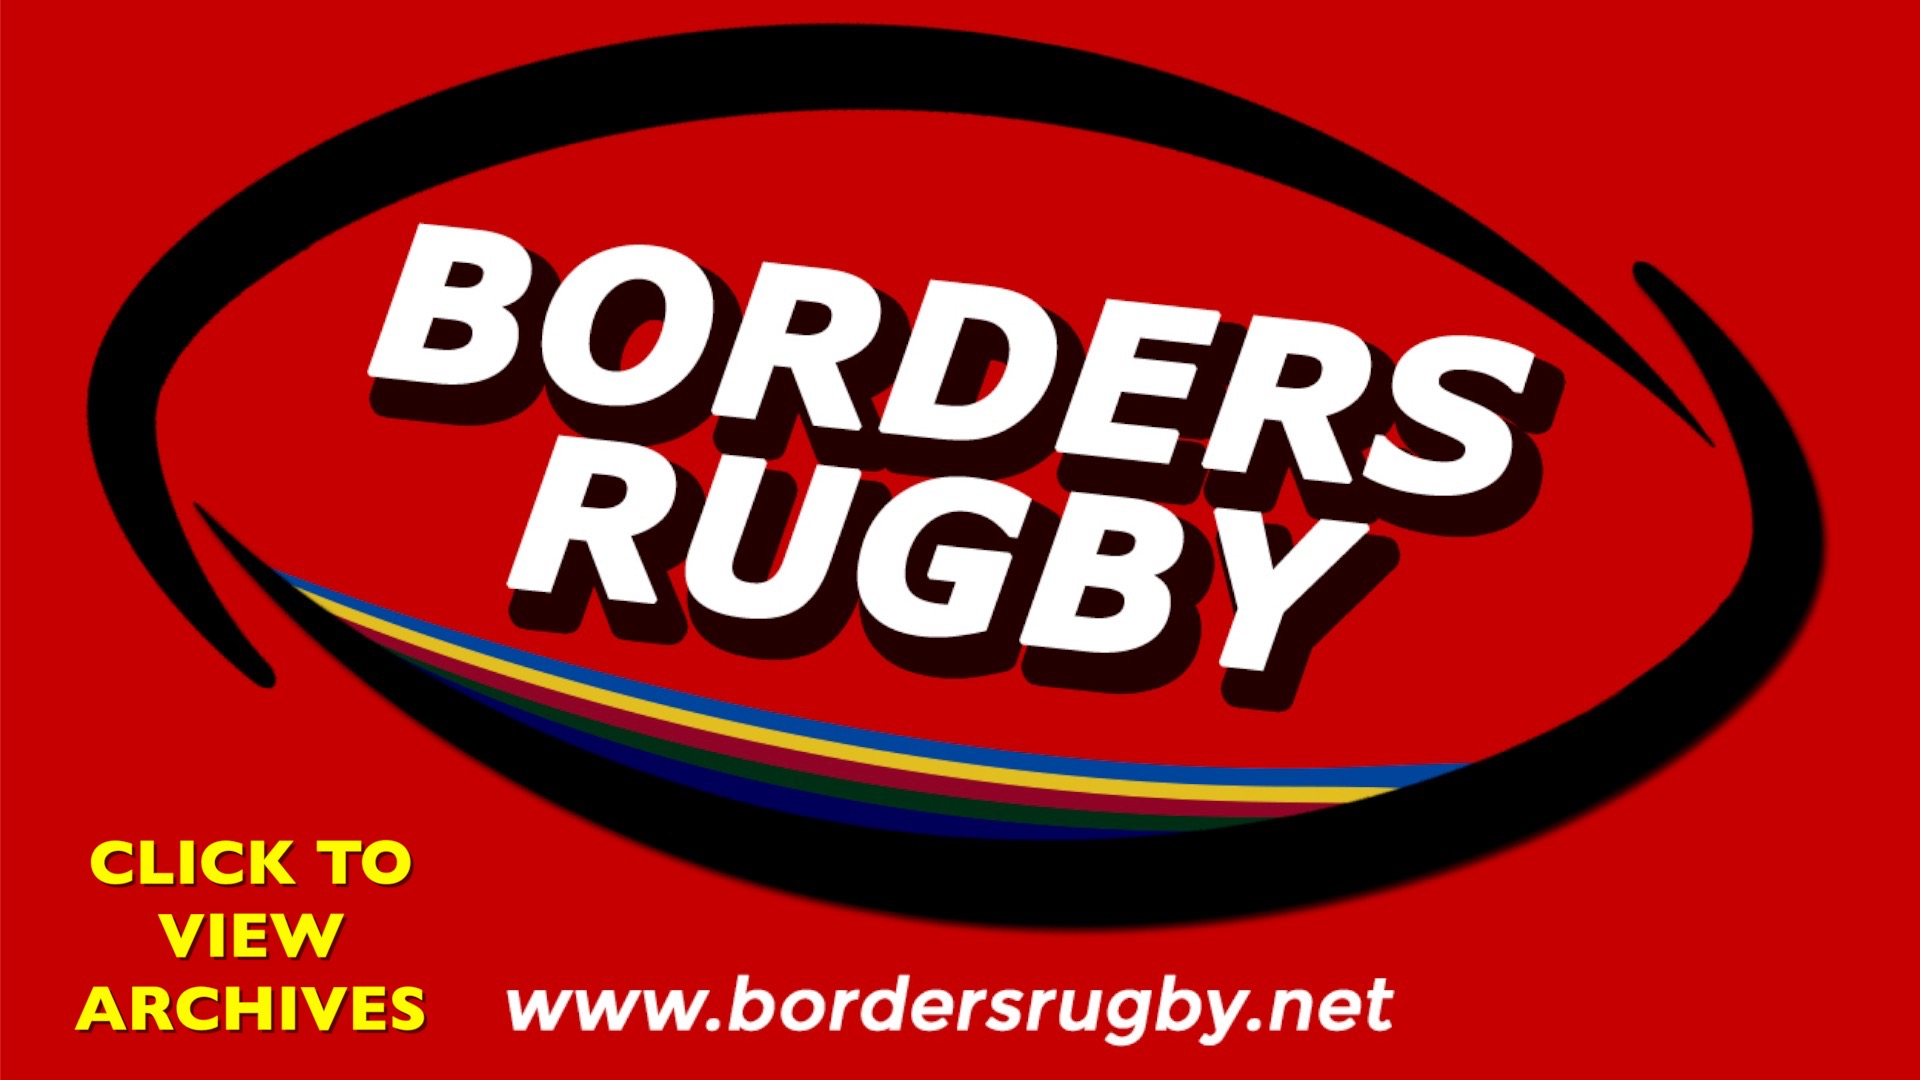 Borders Rugby